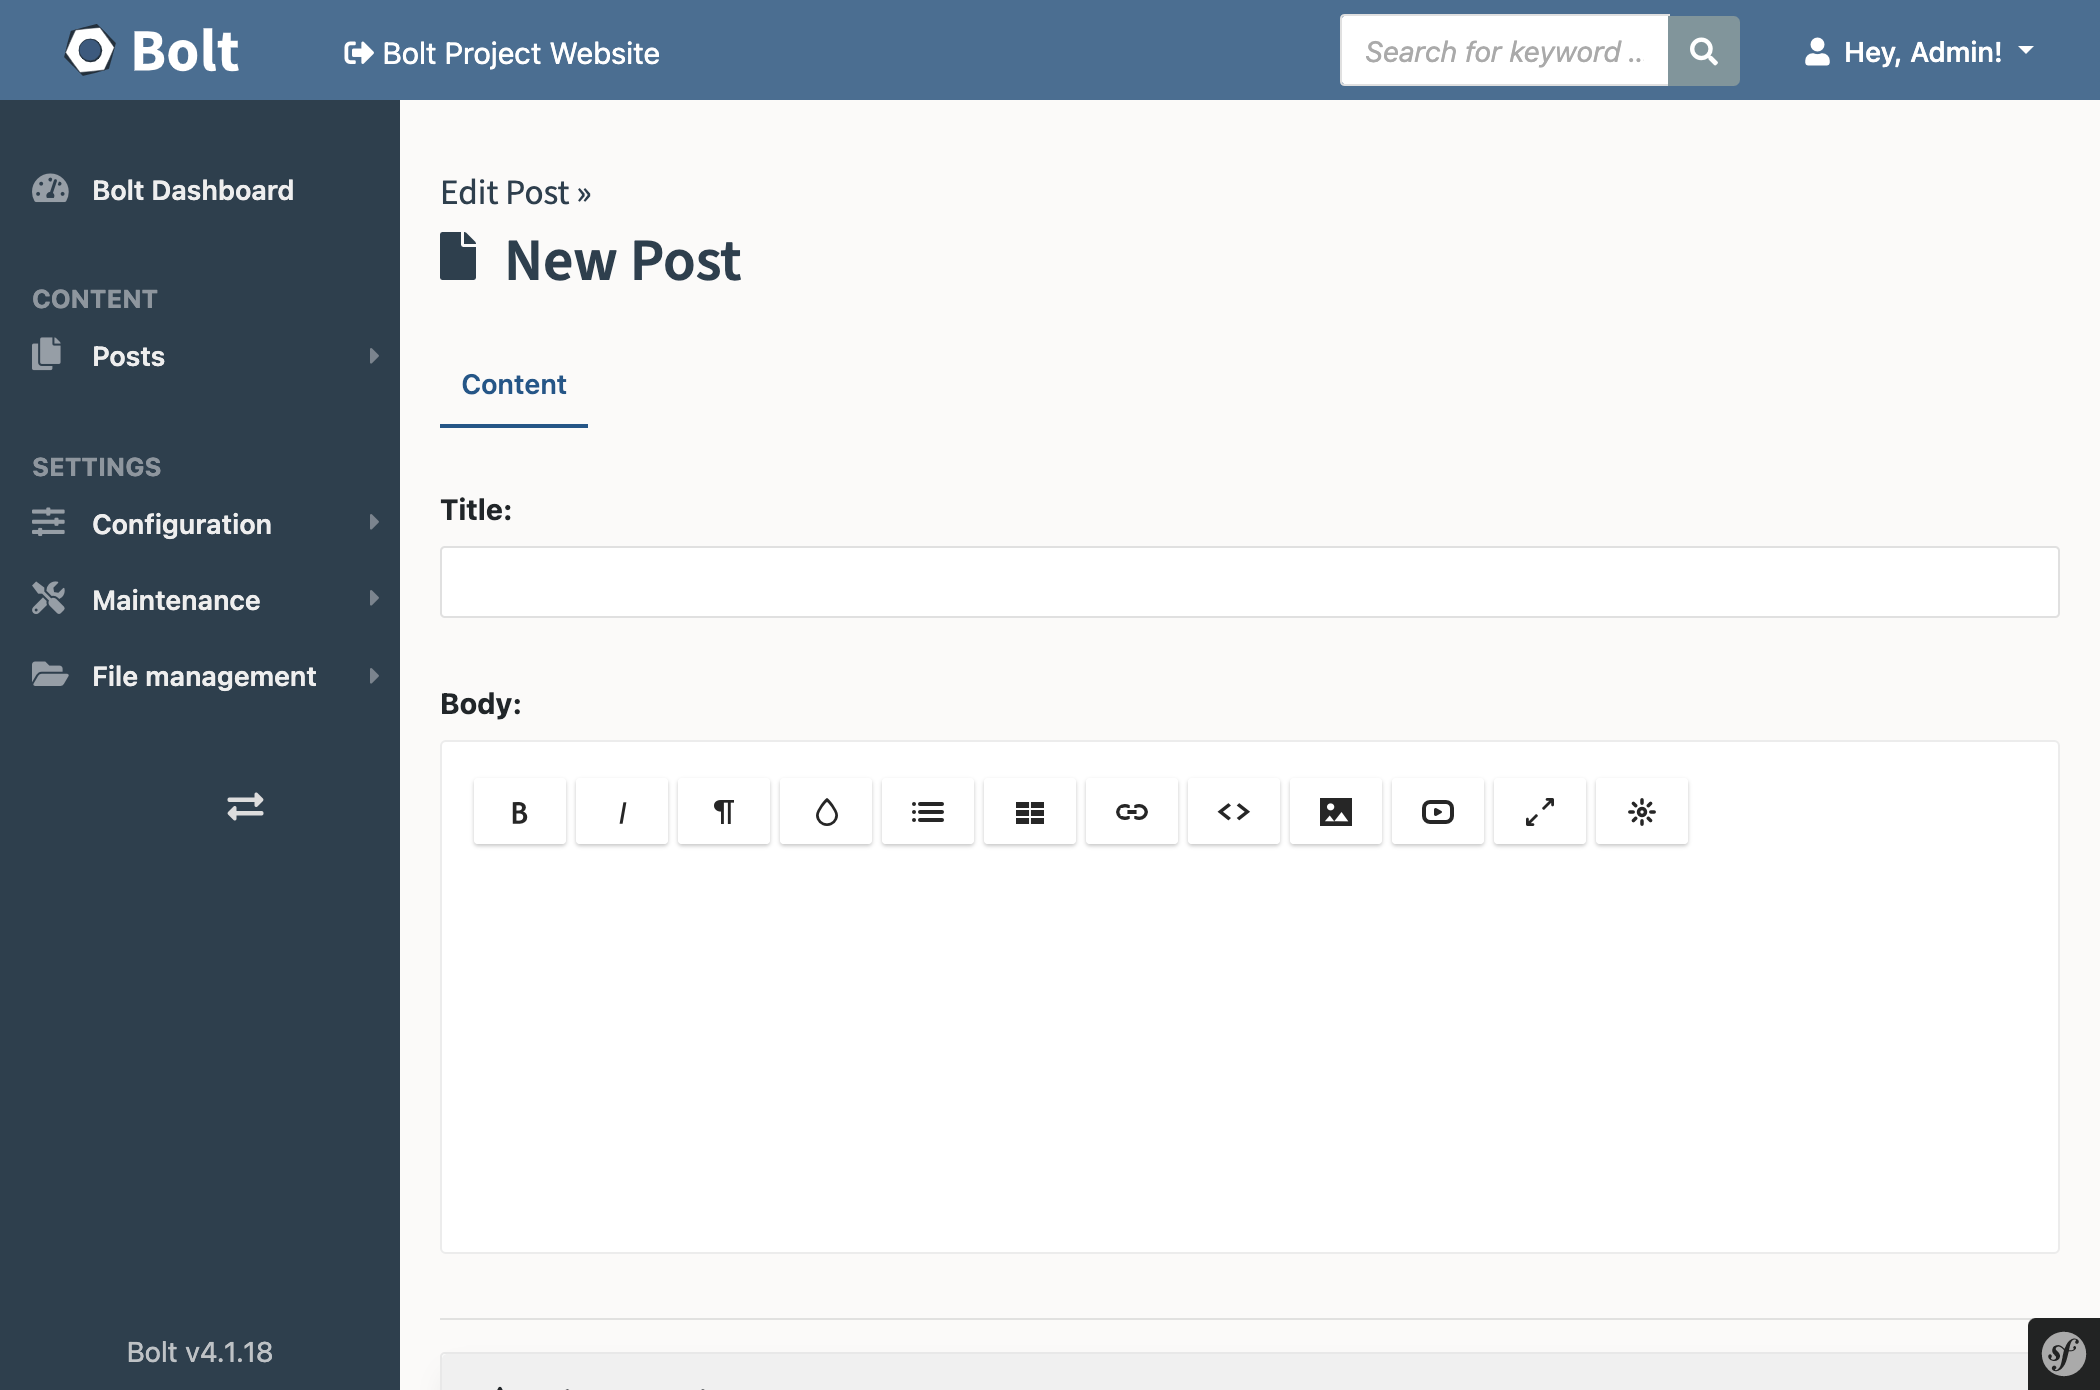 Creating a new Post in the Bolt Editor